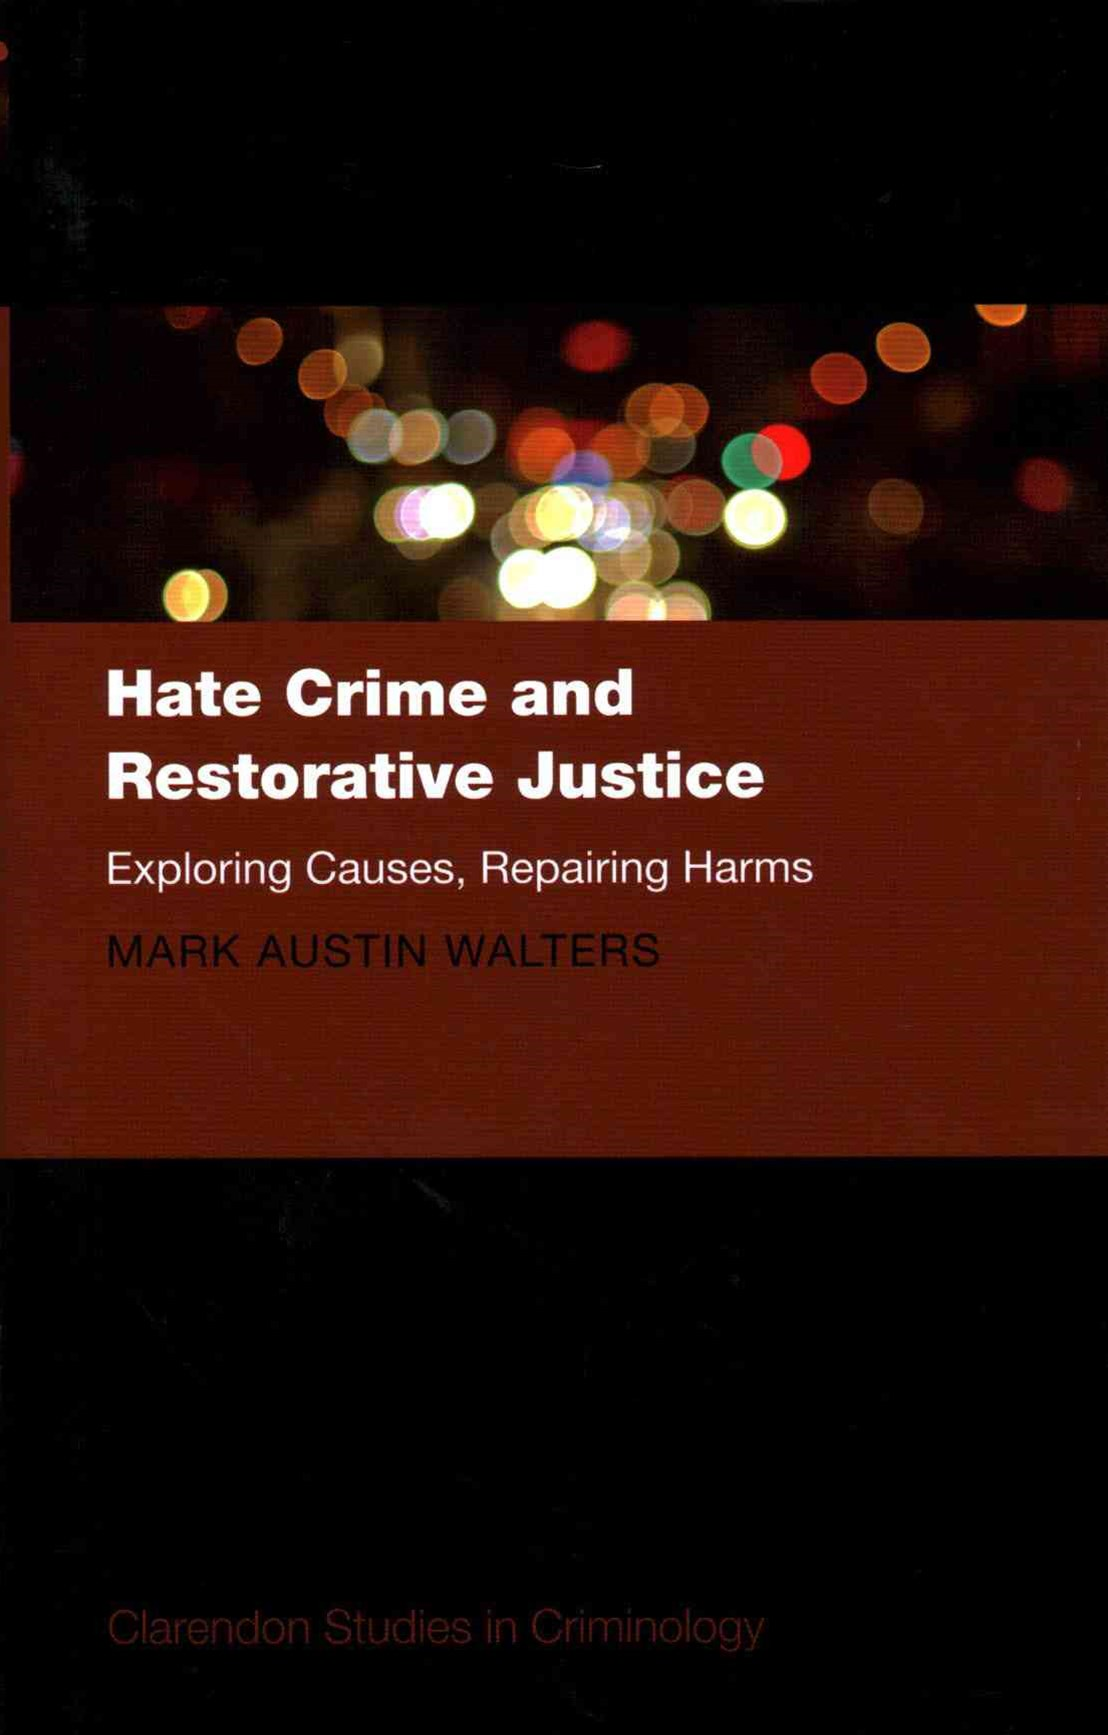 Hate Crime and Restorative Justice